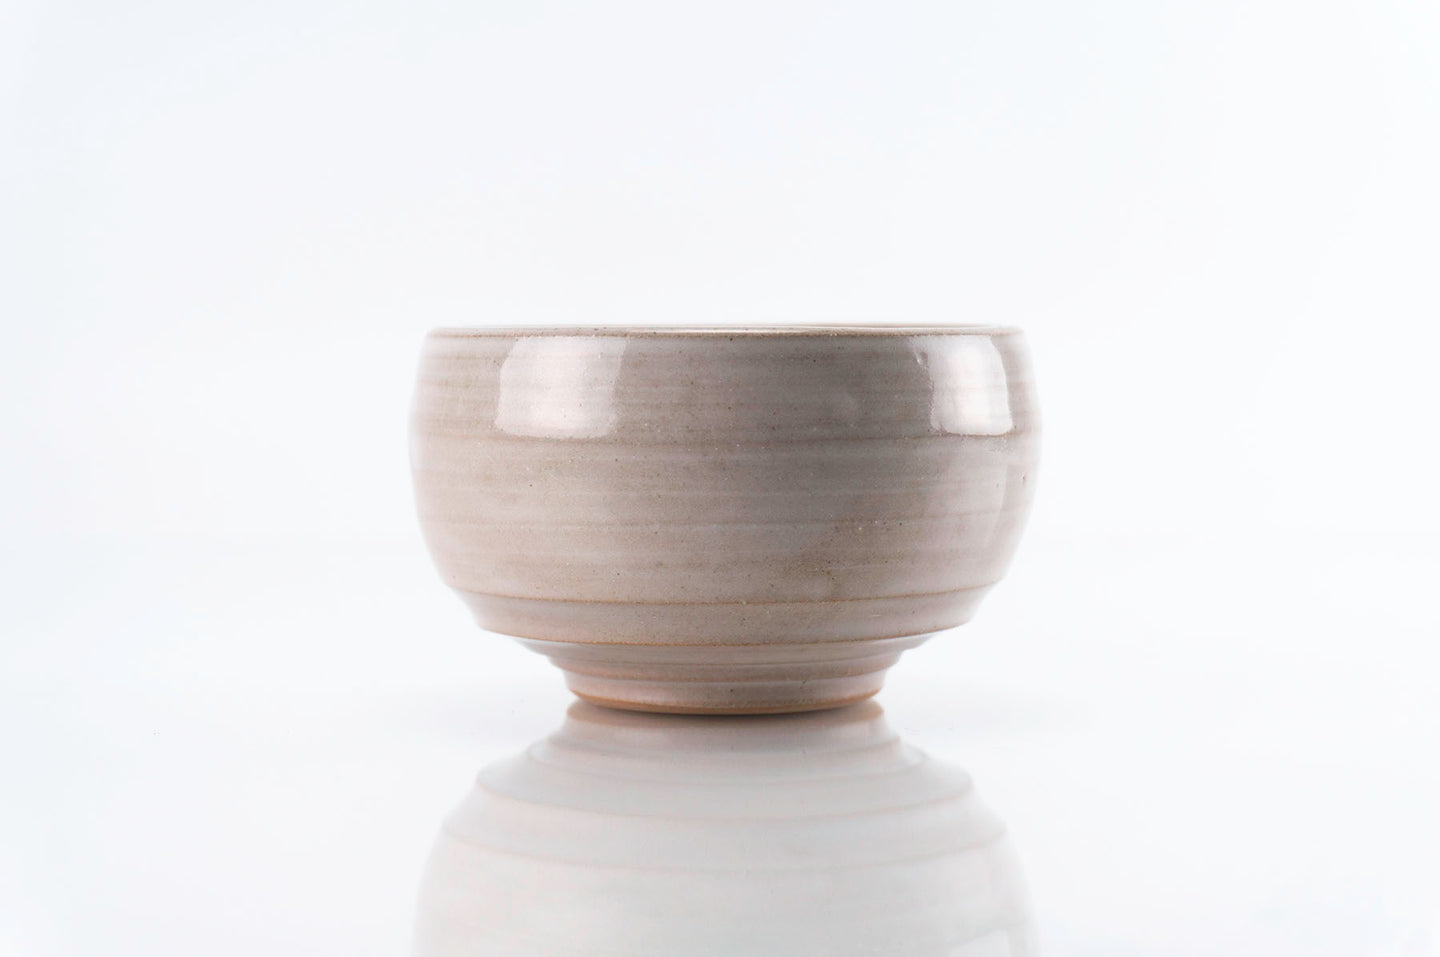 Brown Stoneware White Glaze Cup (c-225)